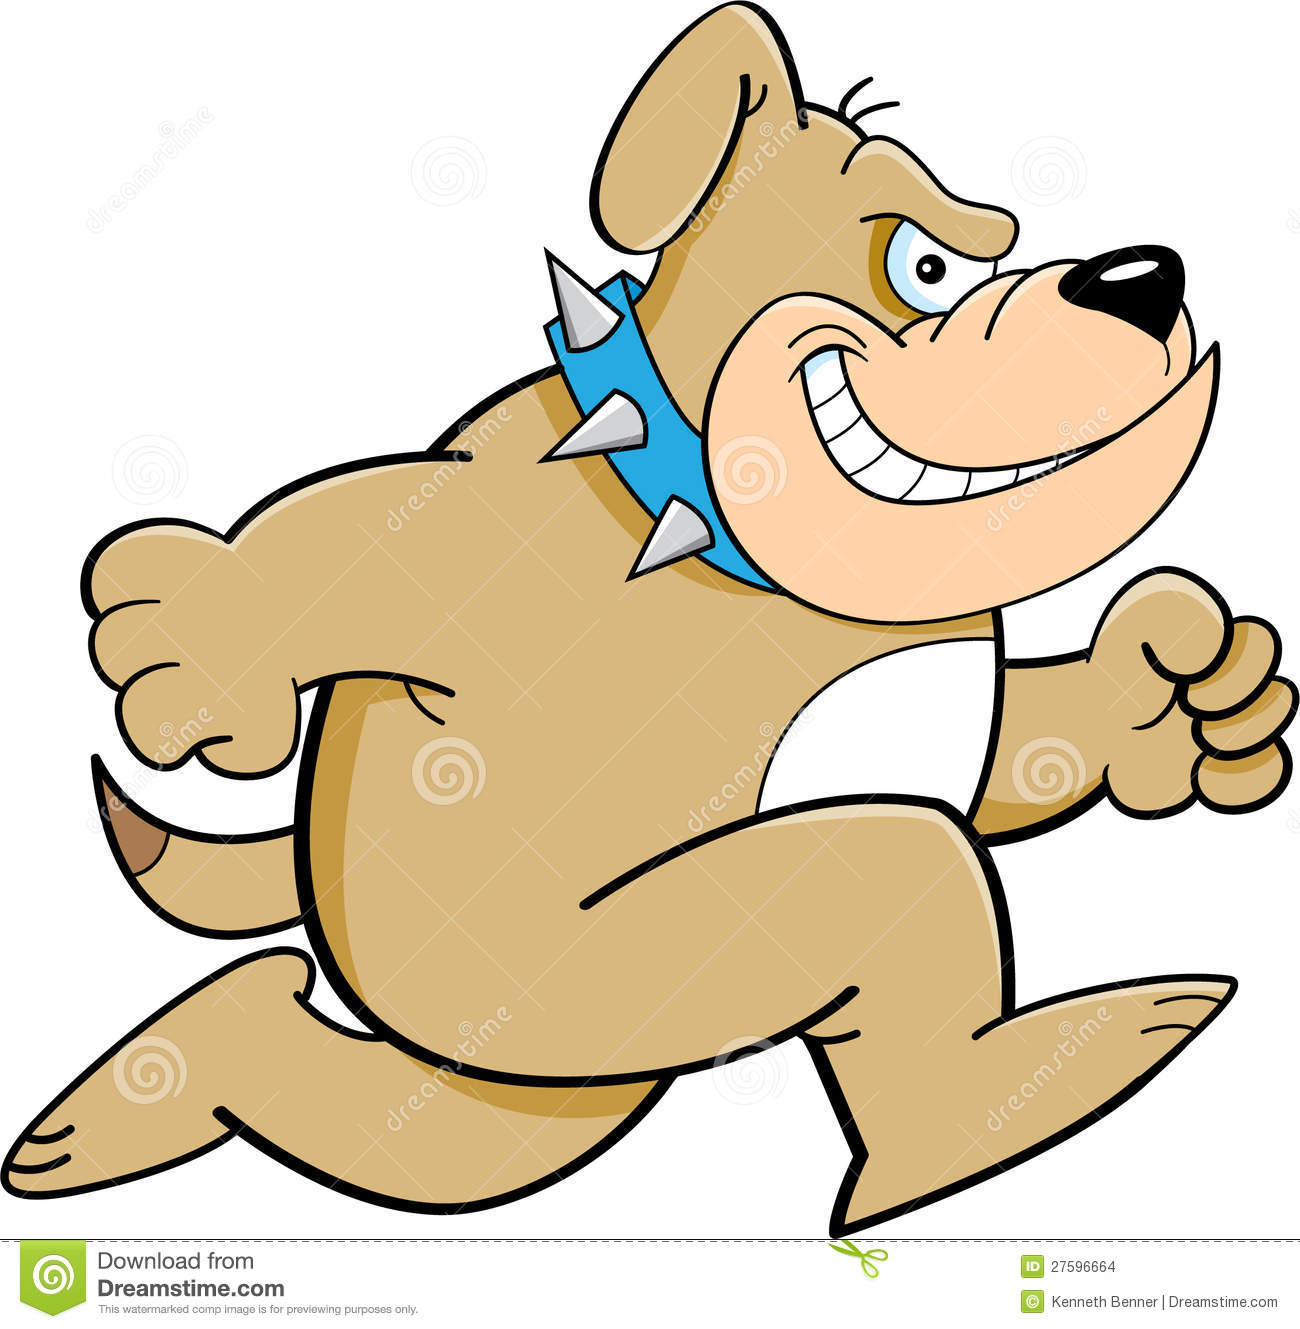 cartoon illustration of a bulldog running mr no pr no 2 991 2No Running Cartoon